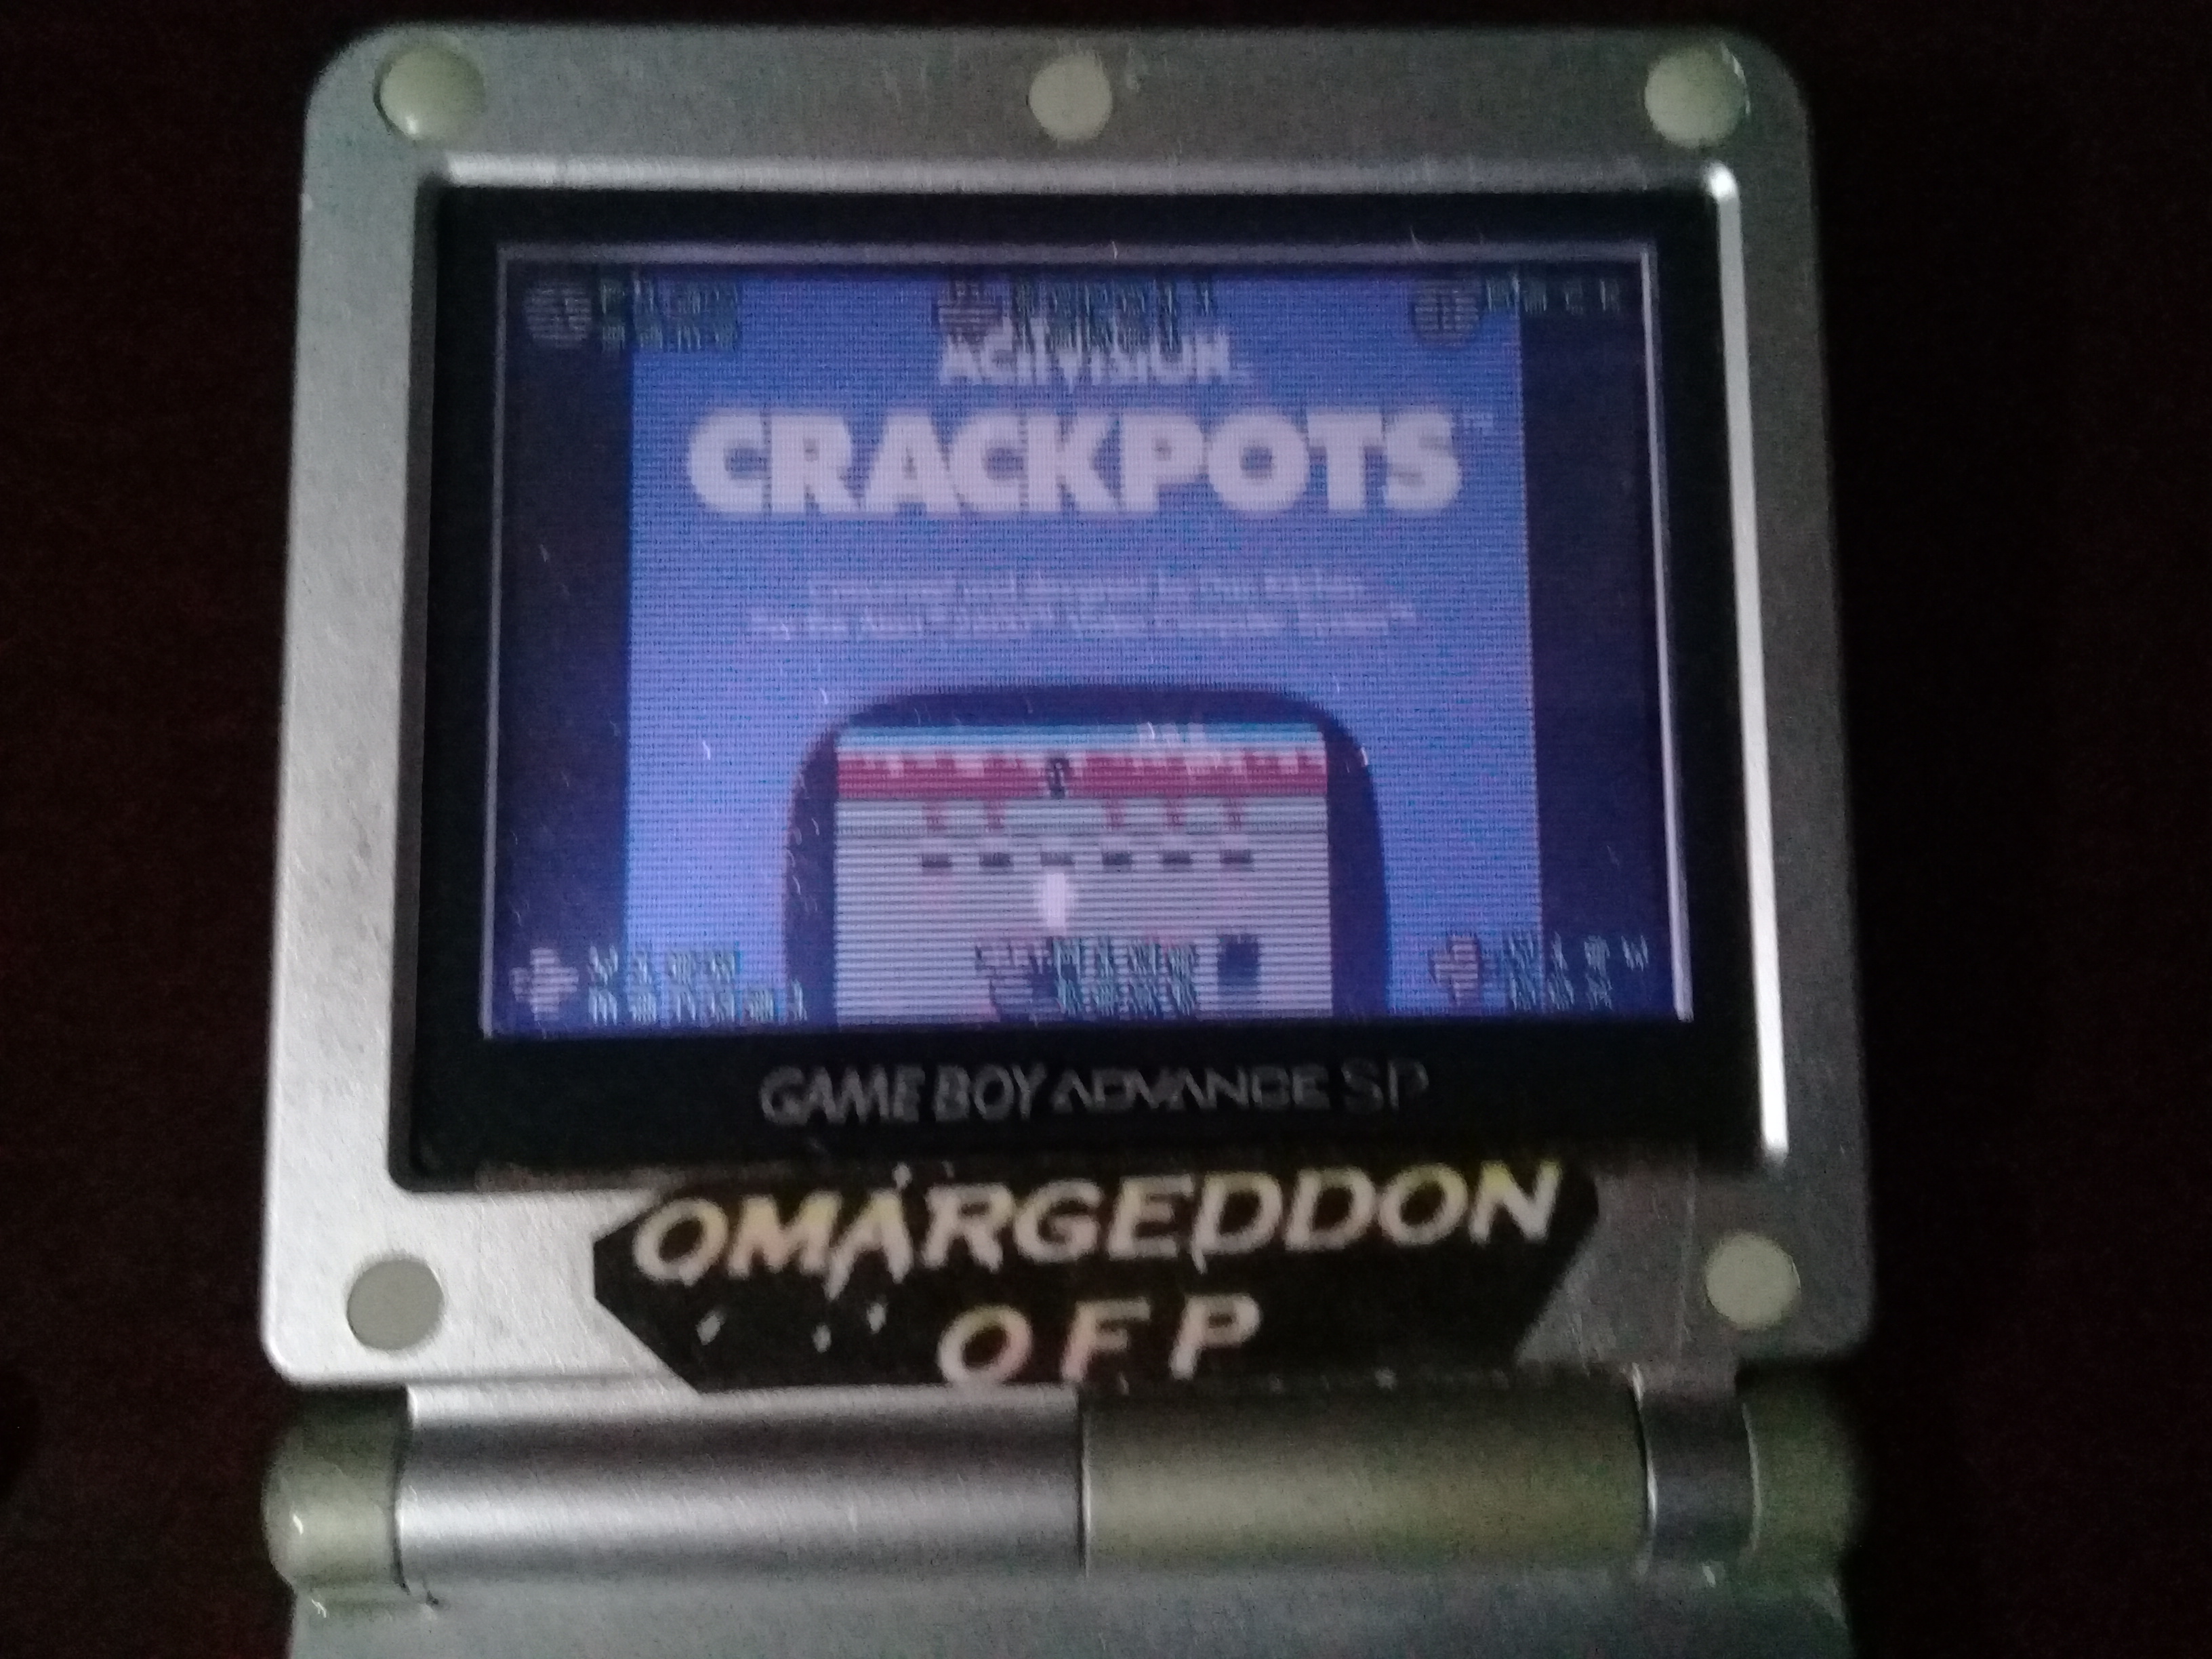 omargeddon: Activision Anthology: Crackpots [Game 1] (GBA) 17,810 points on 2019-09-21 00:18:48